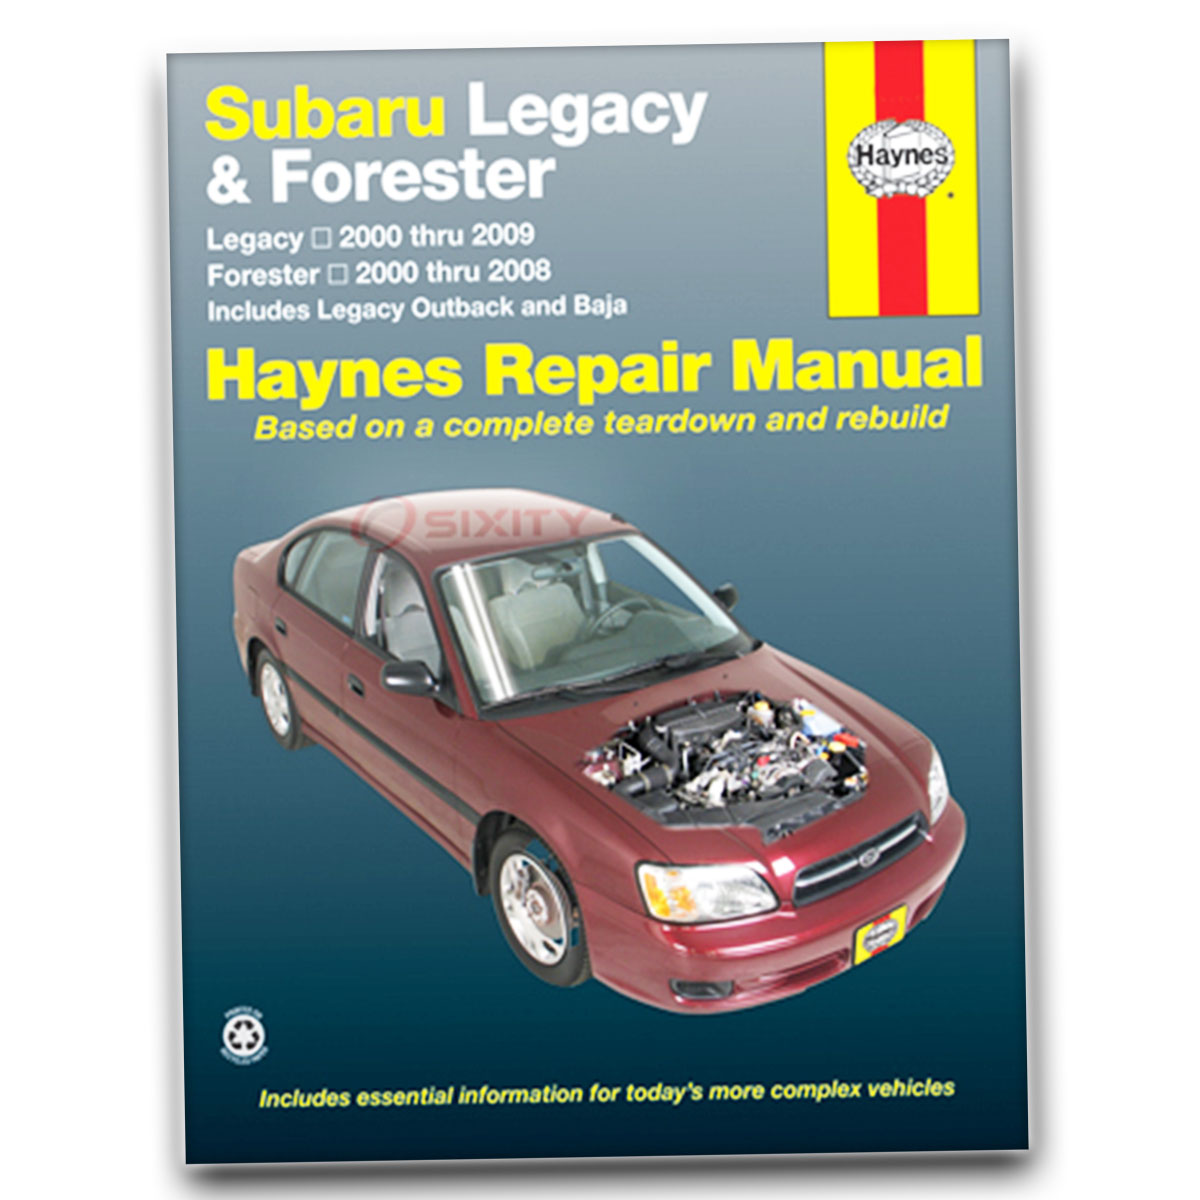 subaru forester haynes repair manual xs l l bean edition base xt rh ebay com Vacuum Tube Reference Guide Galaxy S4 Manual Quick Reference